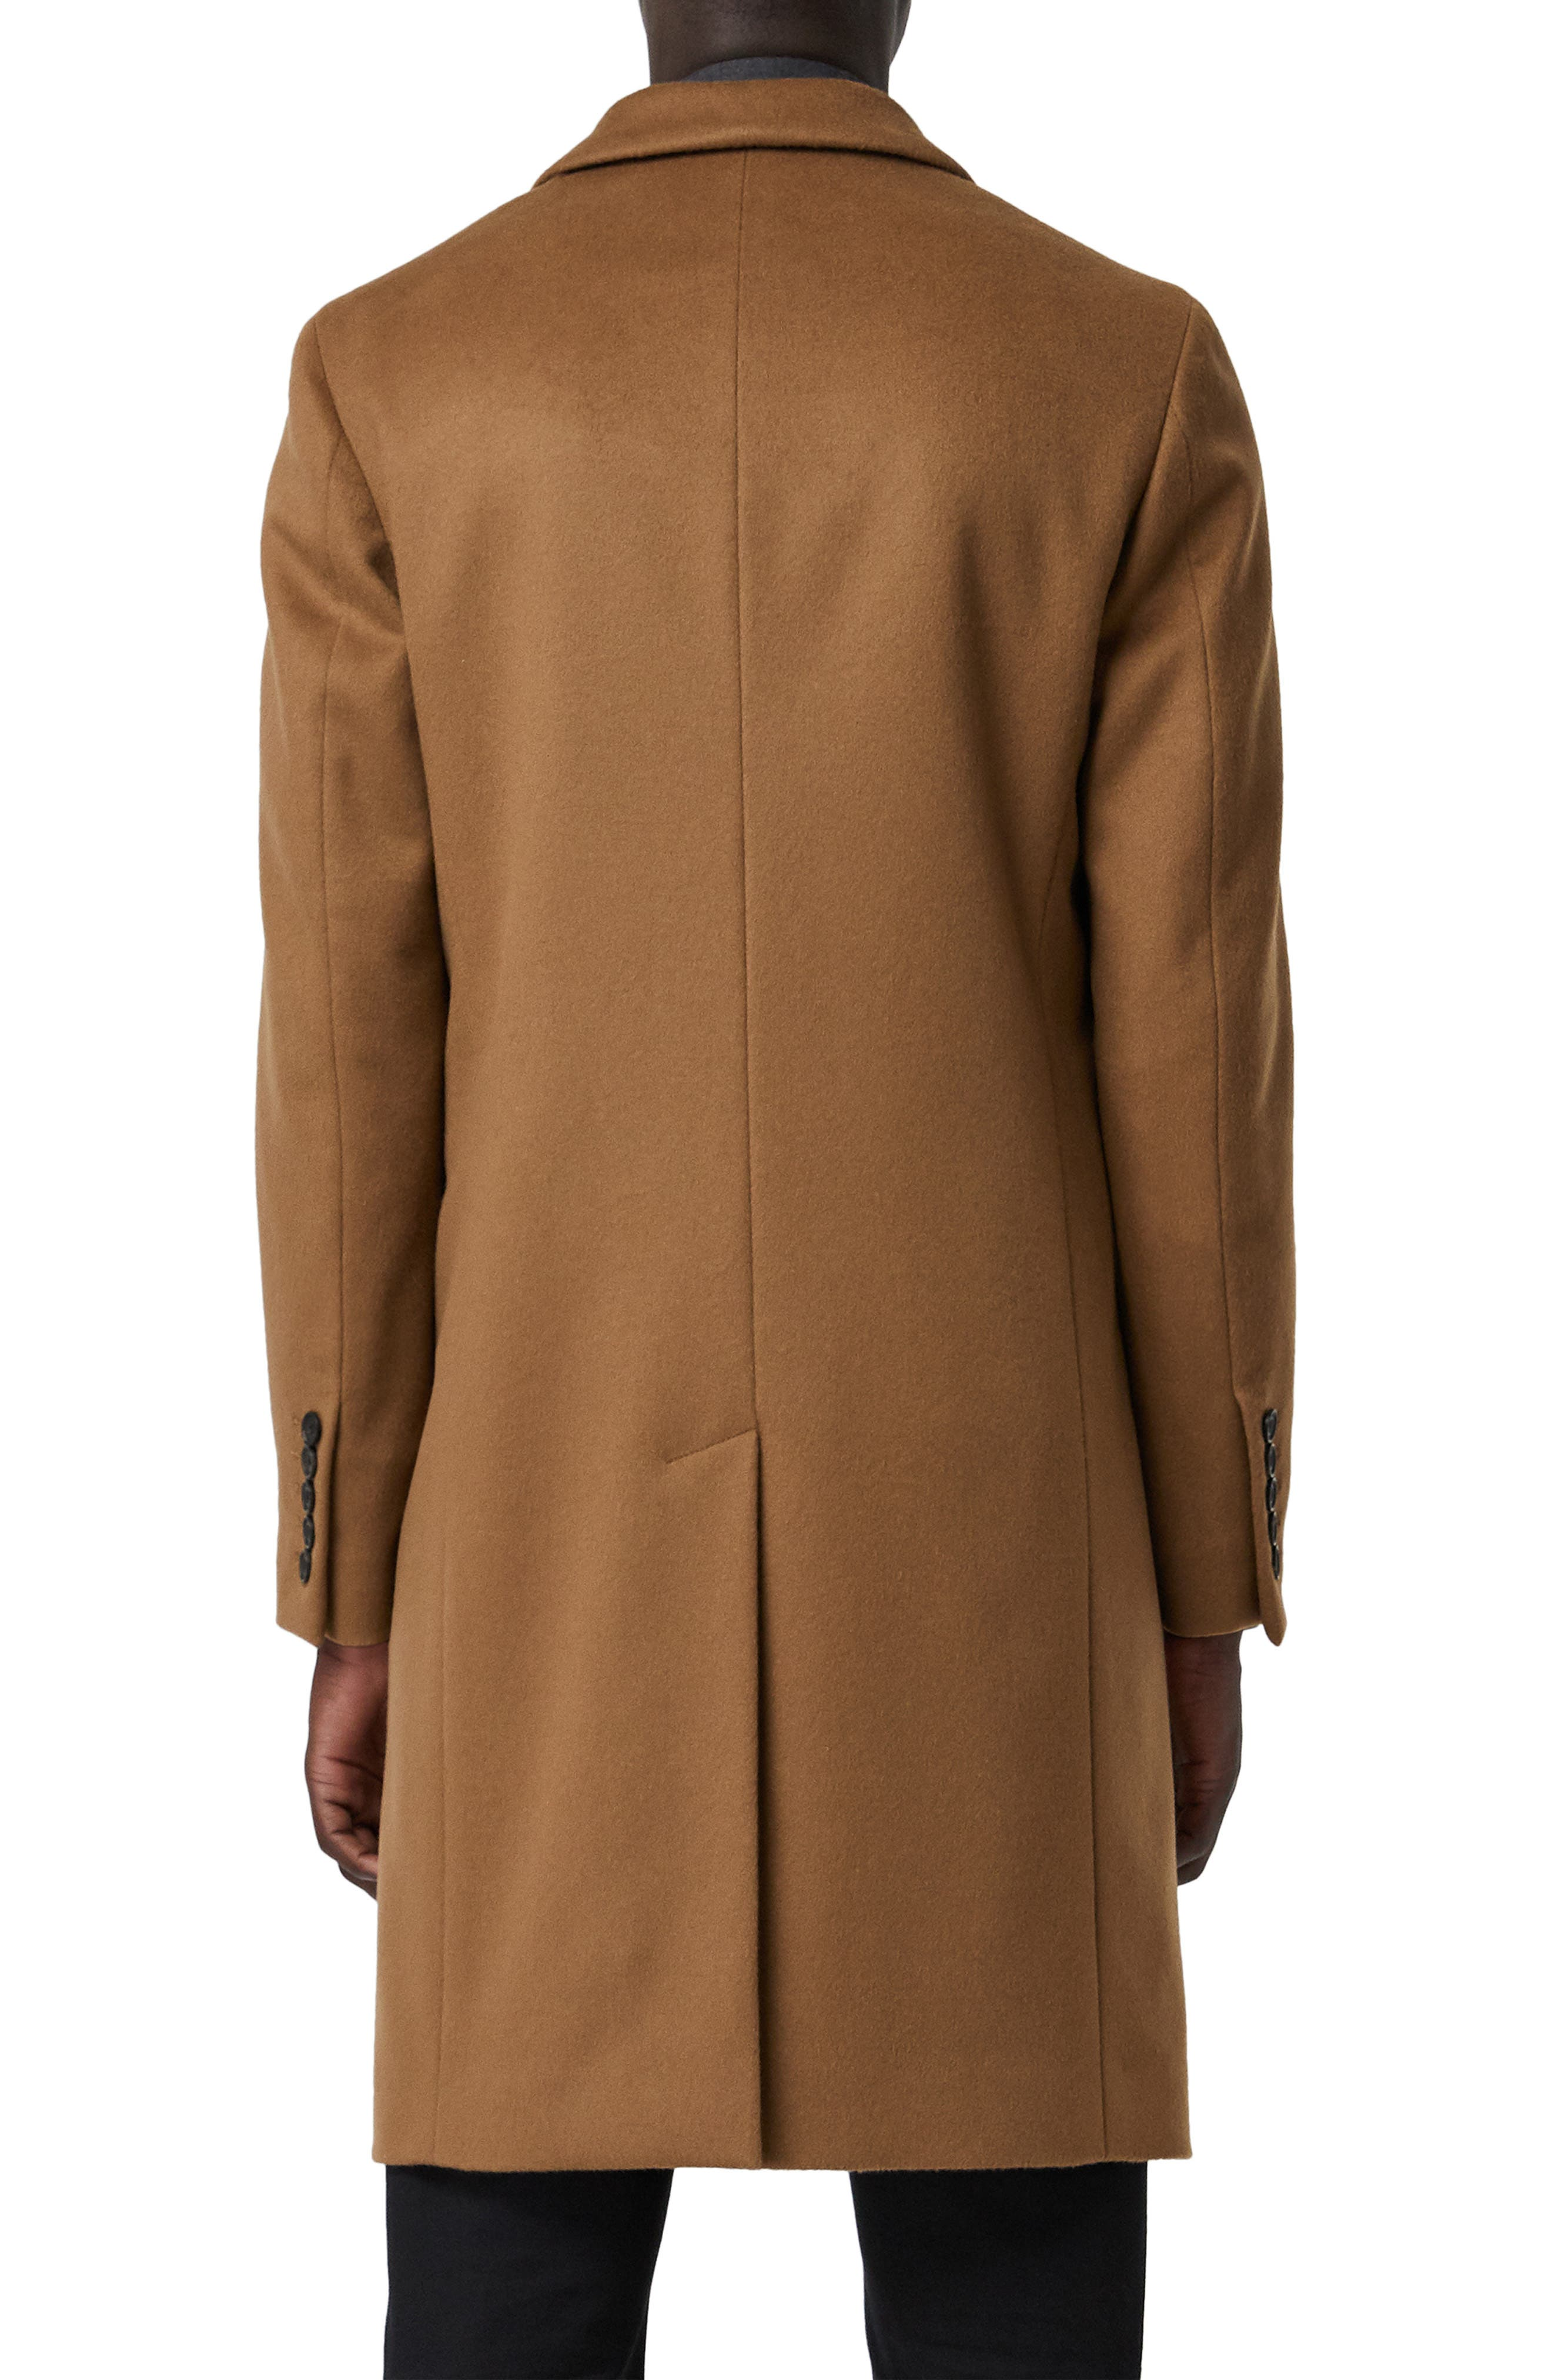 Halesowen Wool and Cashmere Overcoat,                             Alternate thumbnail 2, color,                             DARK CAMEL